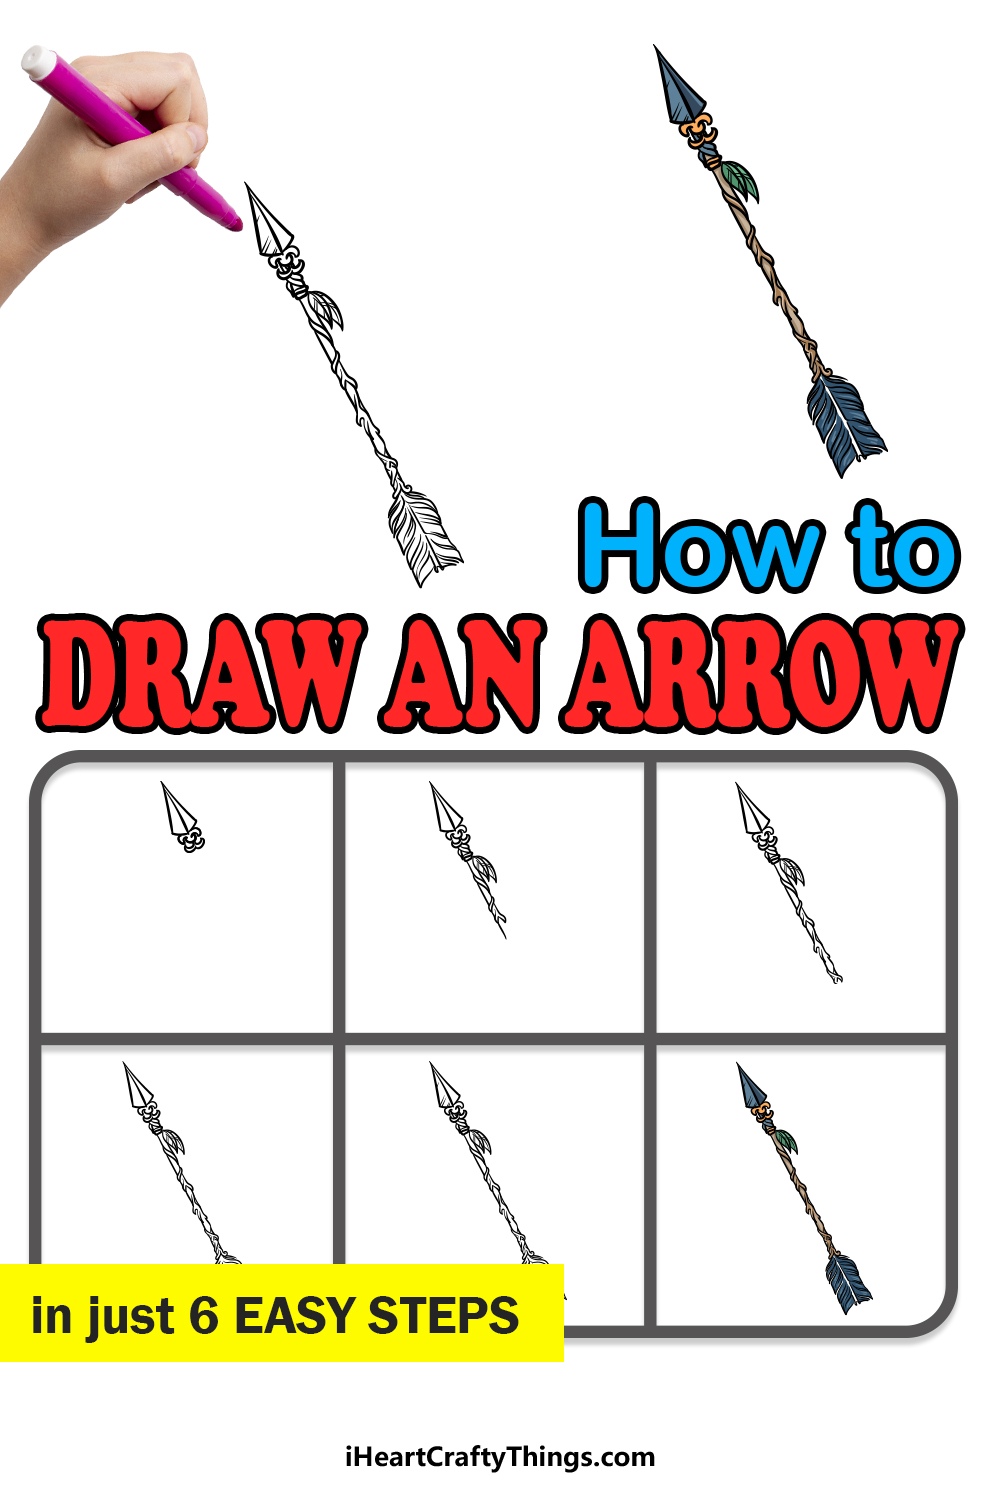 how to draw an arrow in 6 easy steps